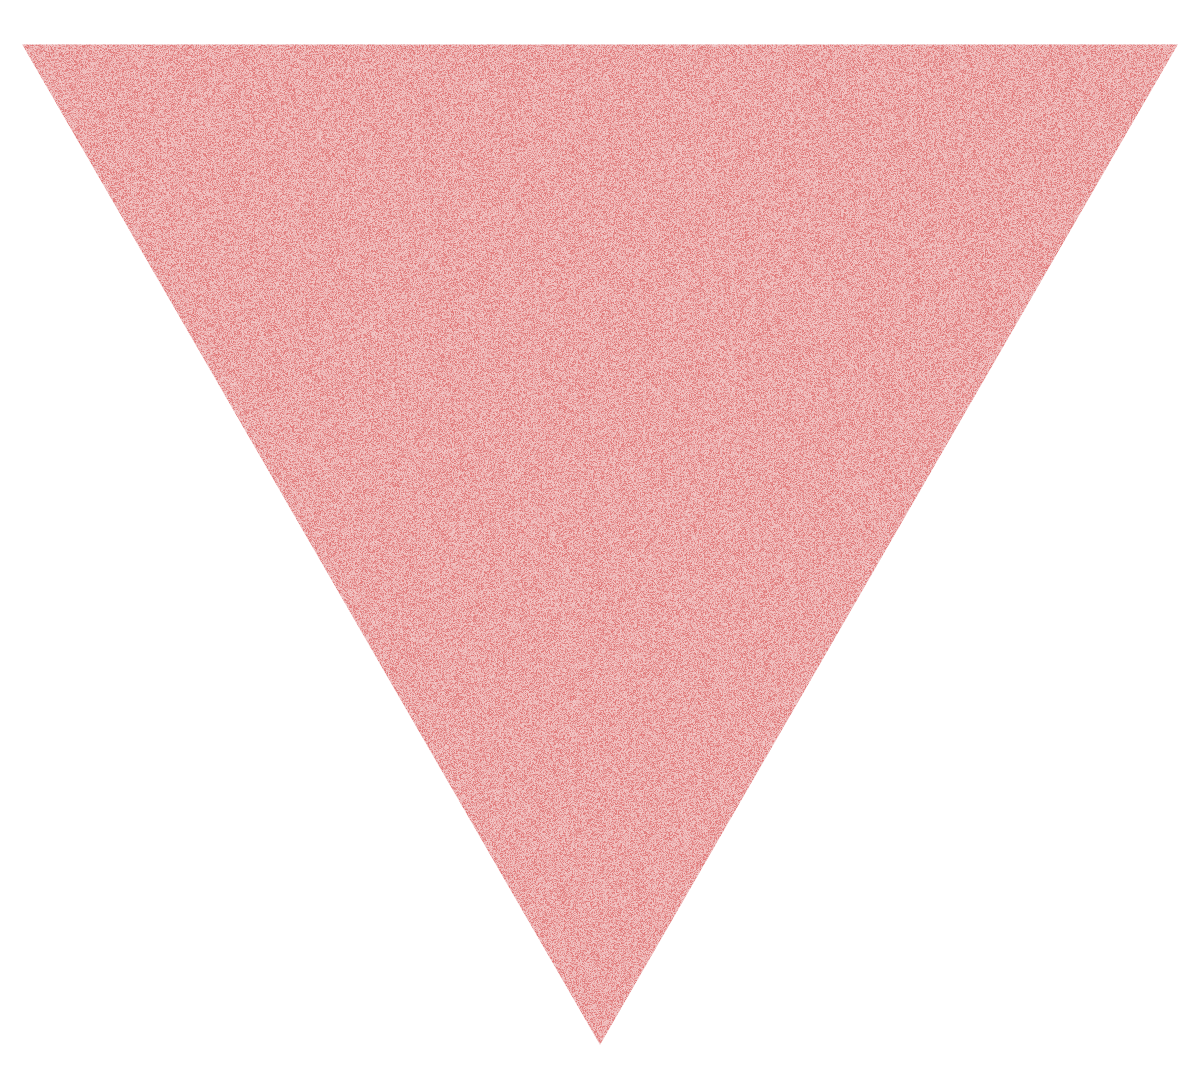 xe/xem/xer  are gender-neutral pronouns. Read more about gender-neutral pronouns on the website of the Gender Equity Resource Center at the University of California, Berkeley.